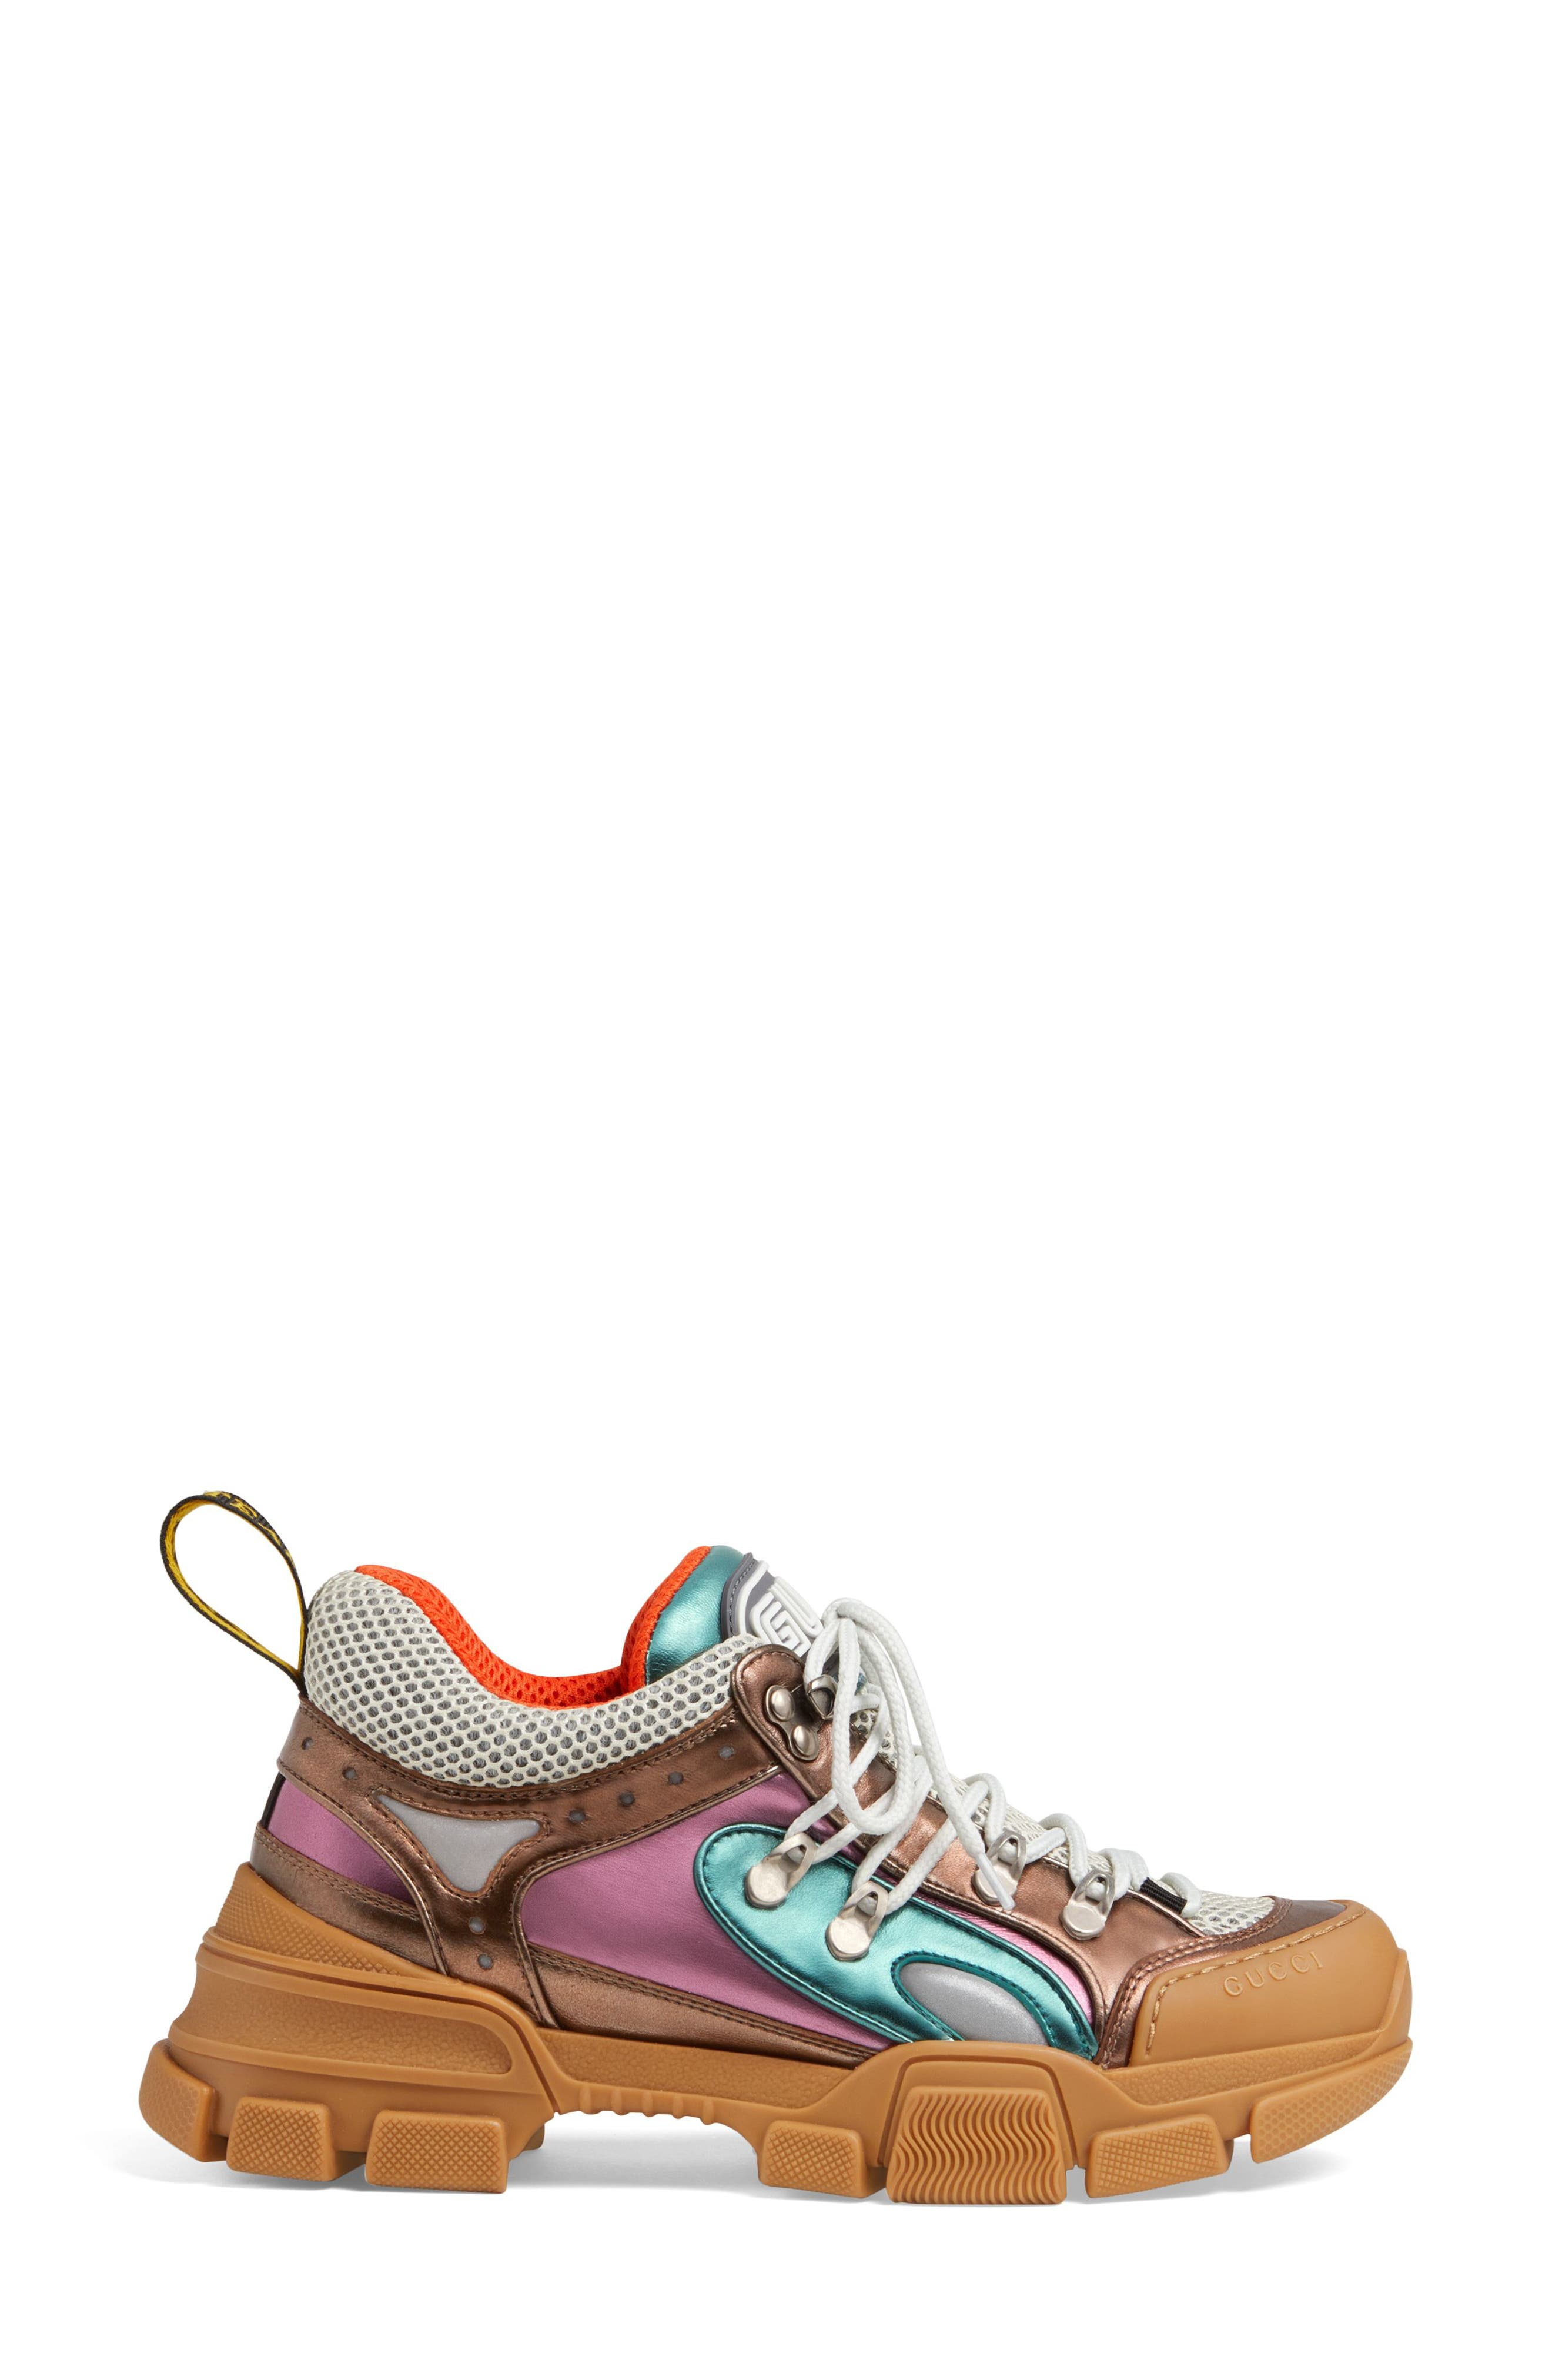 GUCCI, Flashtrek Lace-Up Sneaker, Alternate thumbnail 3, color, BROWN/ BLUE/ PINK